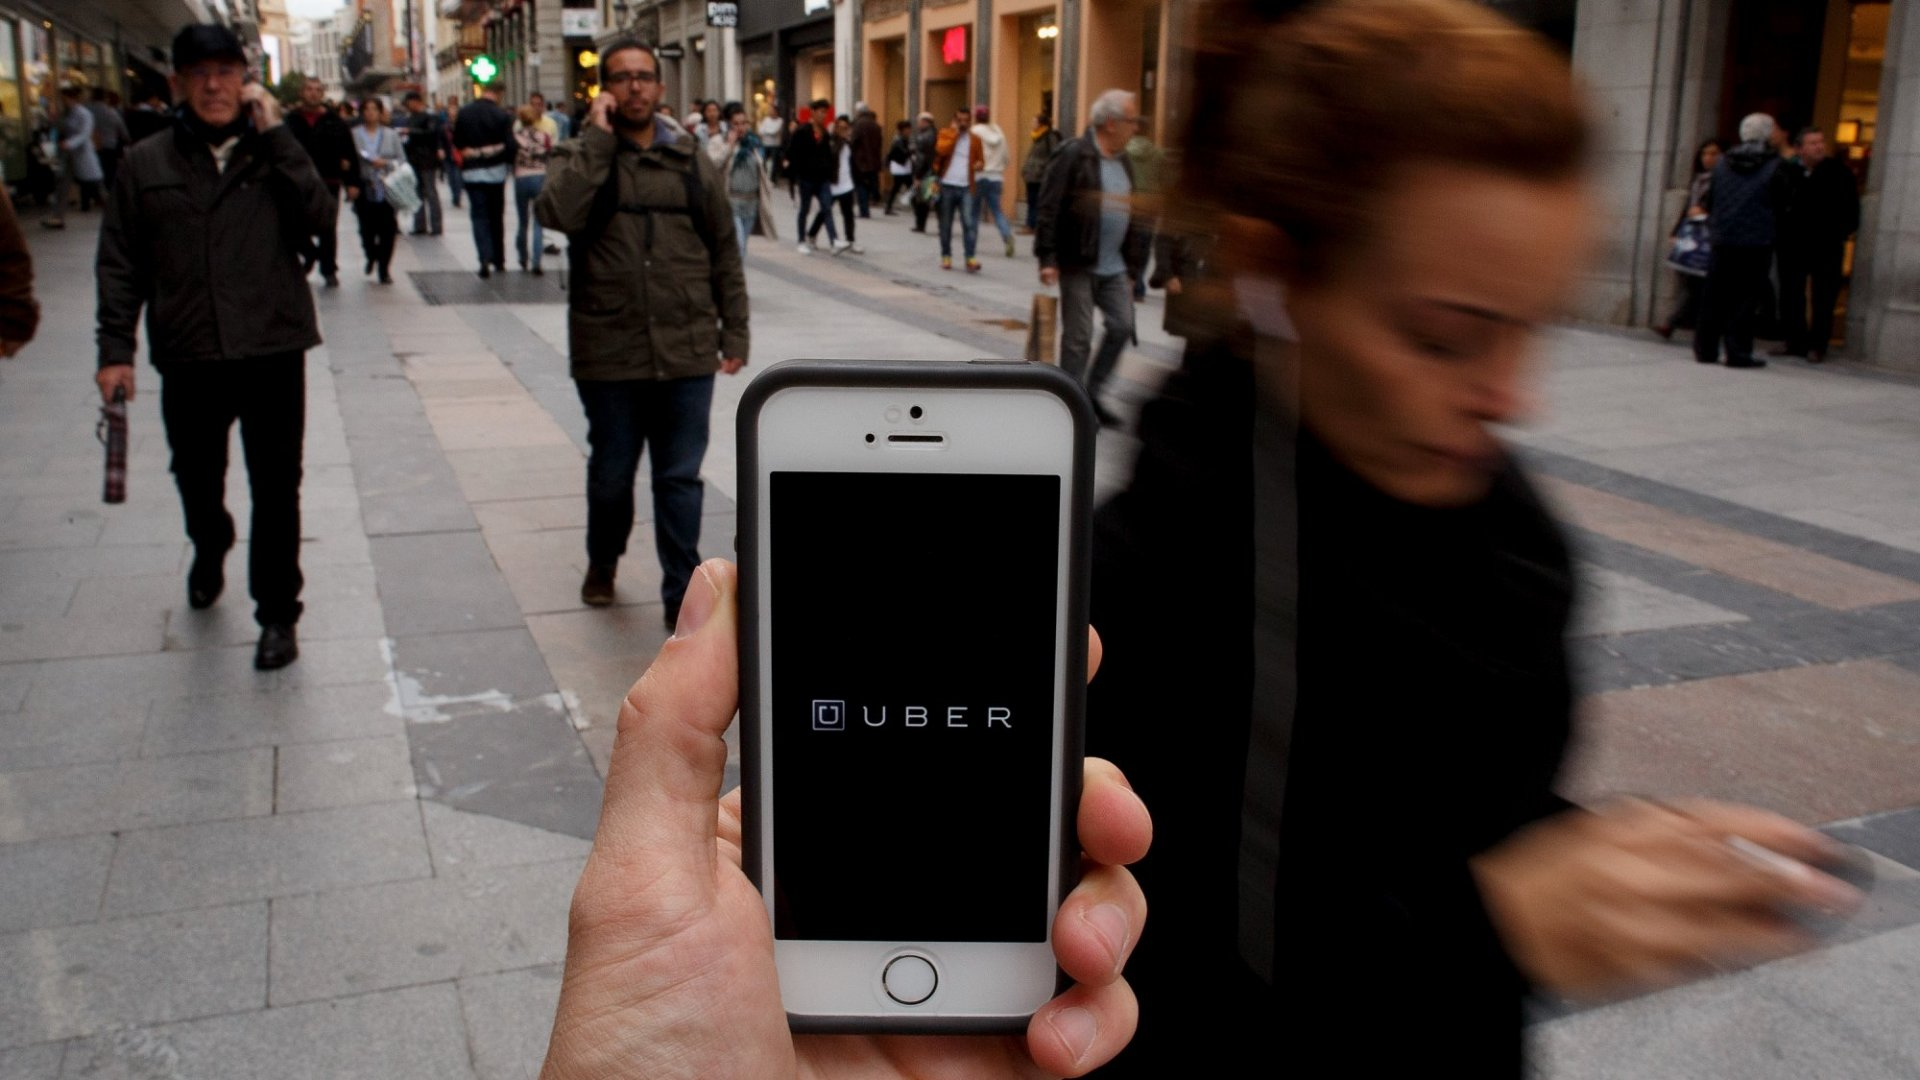 Uber Drivers Are EmployeesNot Contractors, British Court Rules